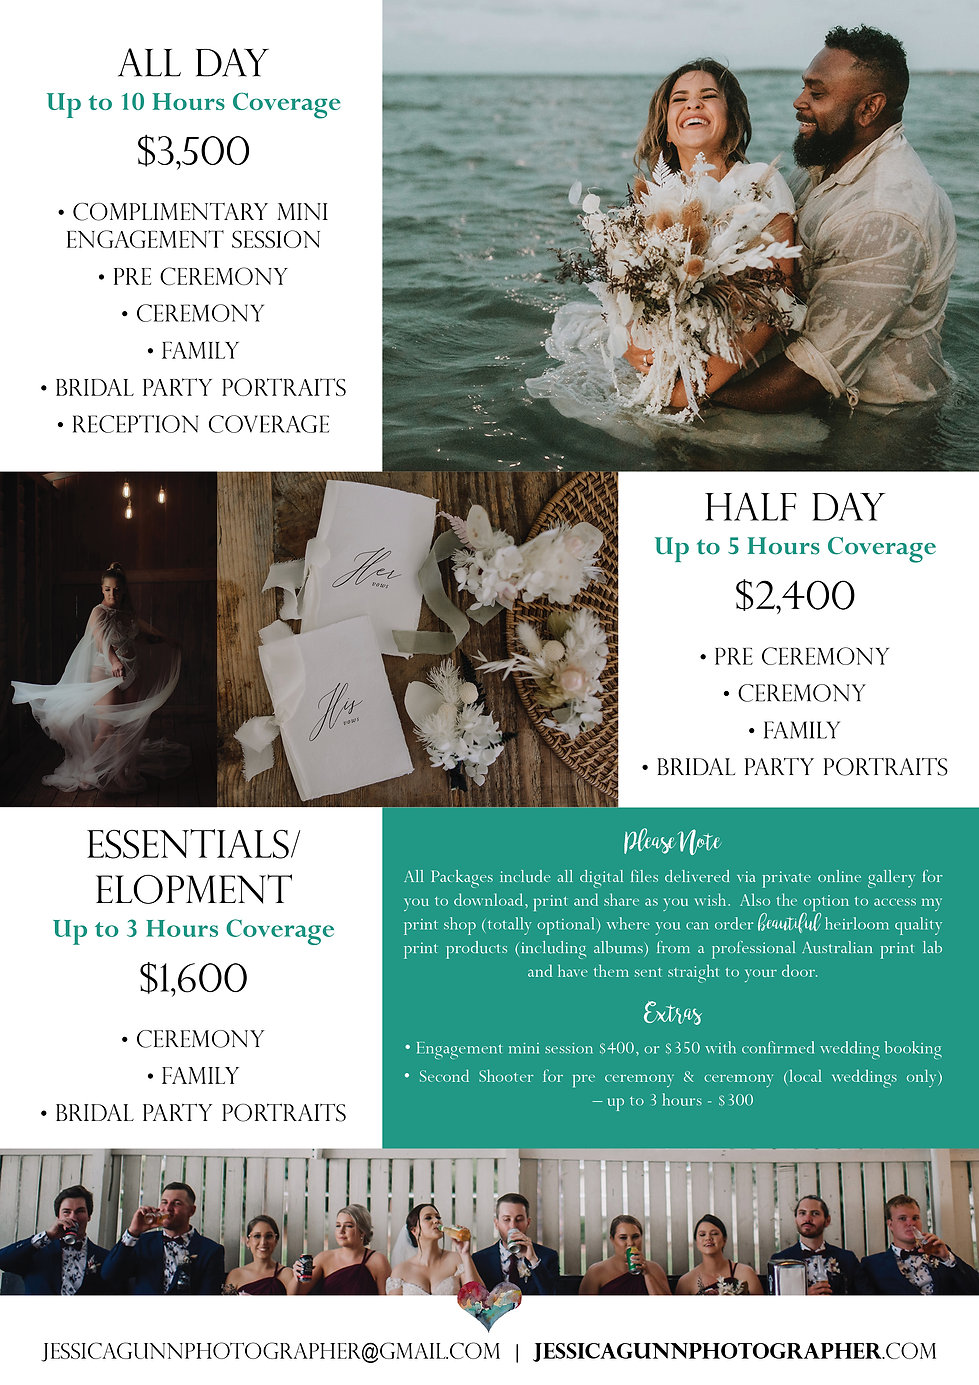 JGP Wedding Package Pricing Guide 21-222